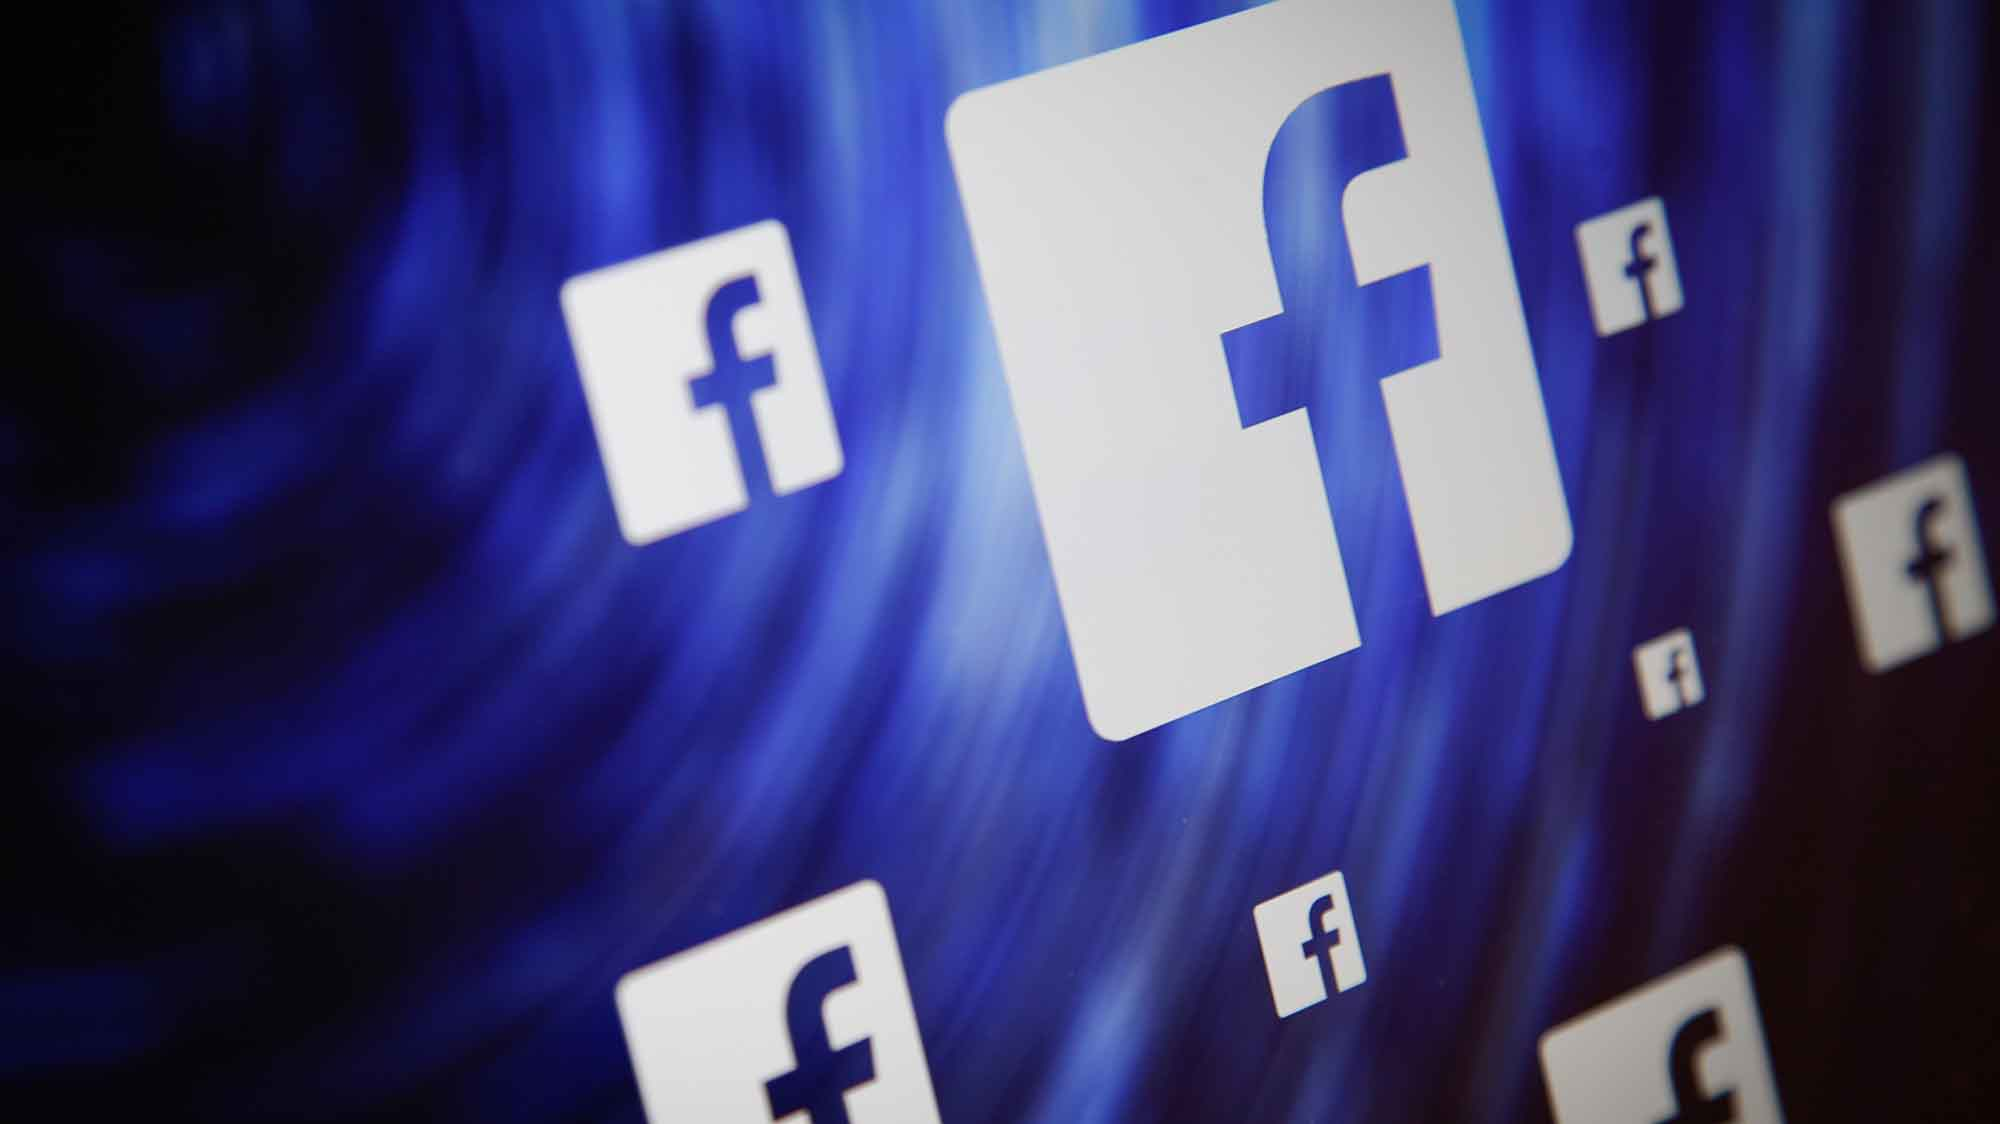 USA election agency seeks comment after Facebook cites Russian ads